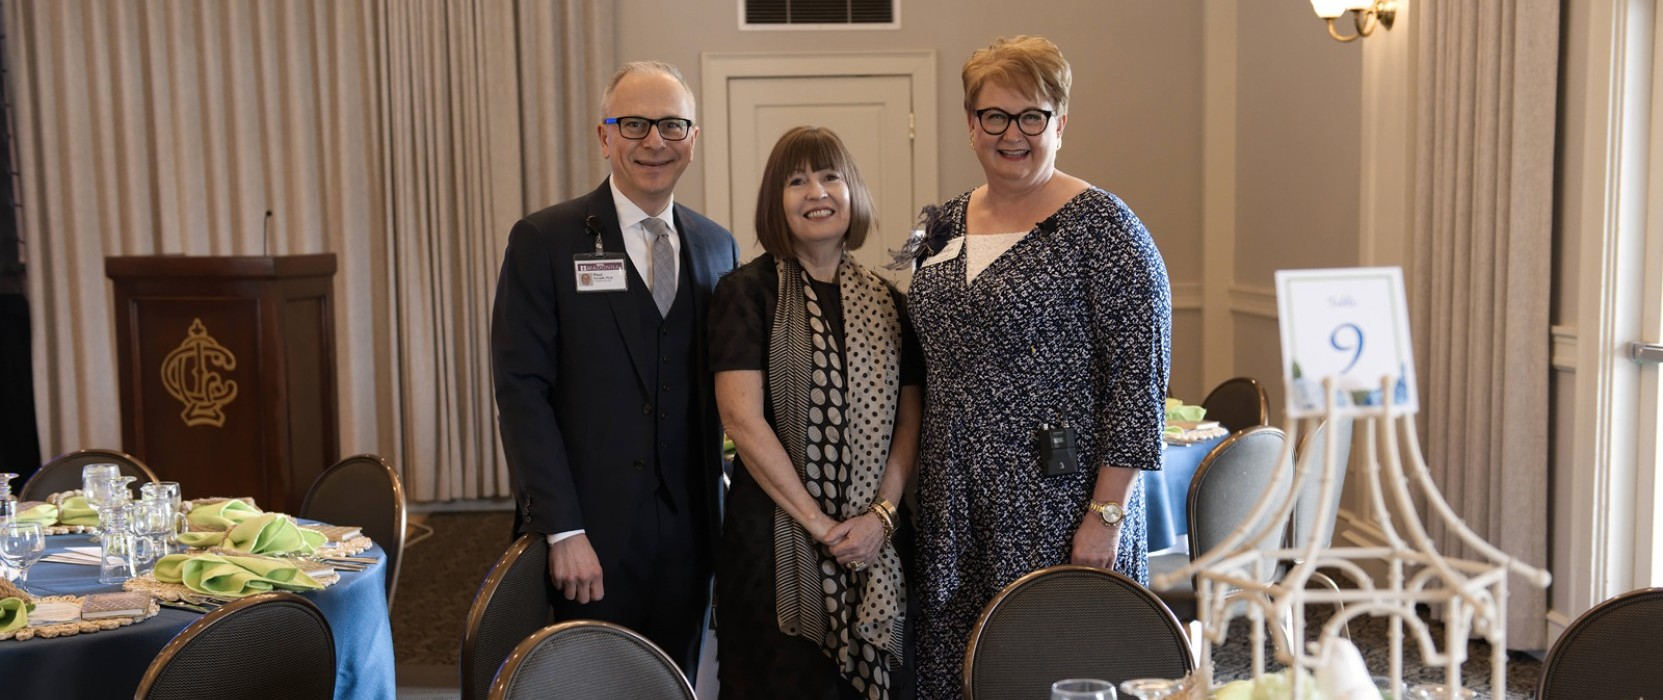 Garrity inspires and delights at 2018 Foundation inaugural Dish and Bloom luncheon